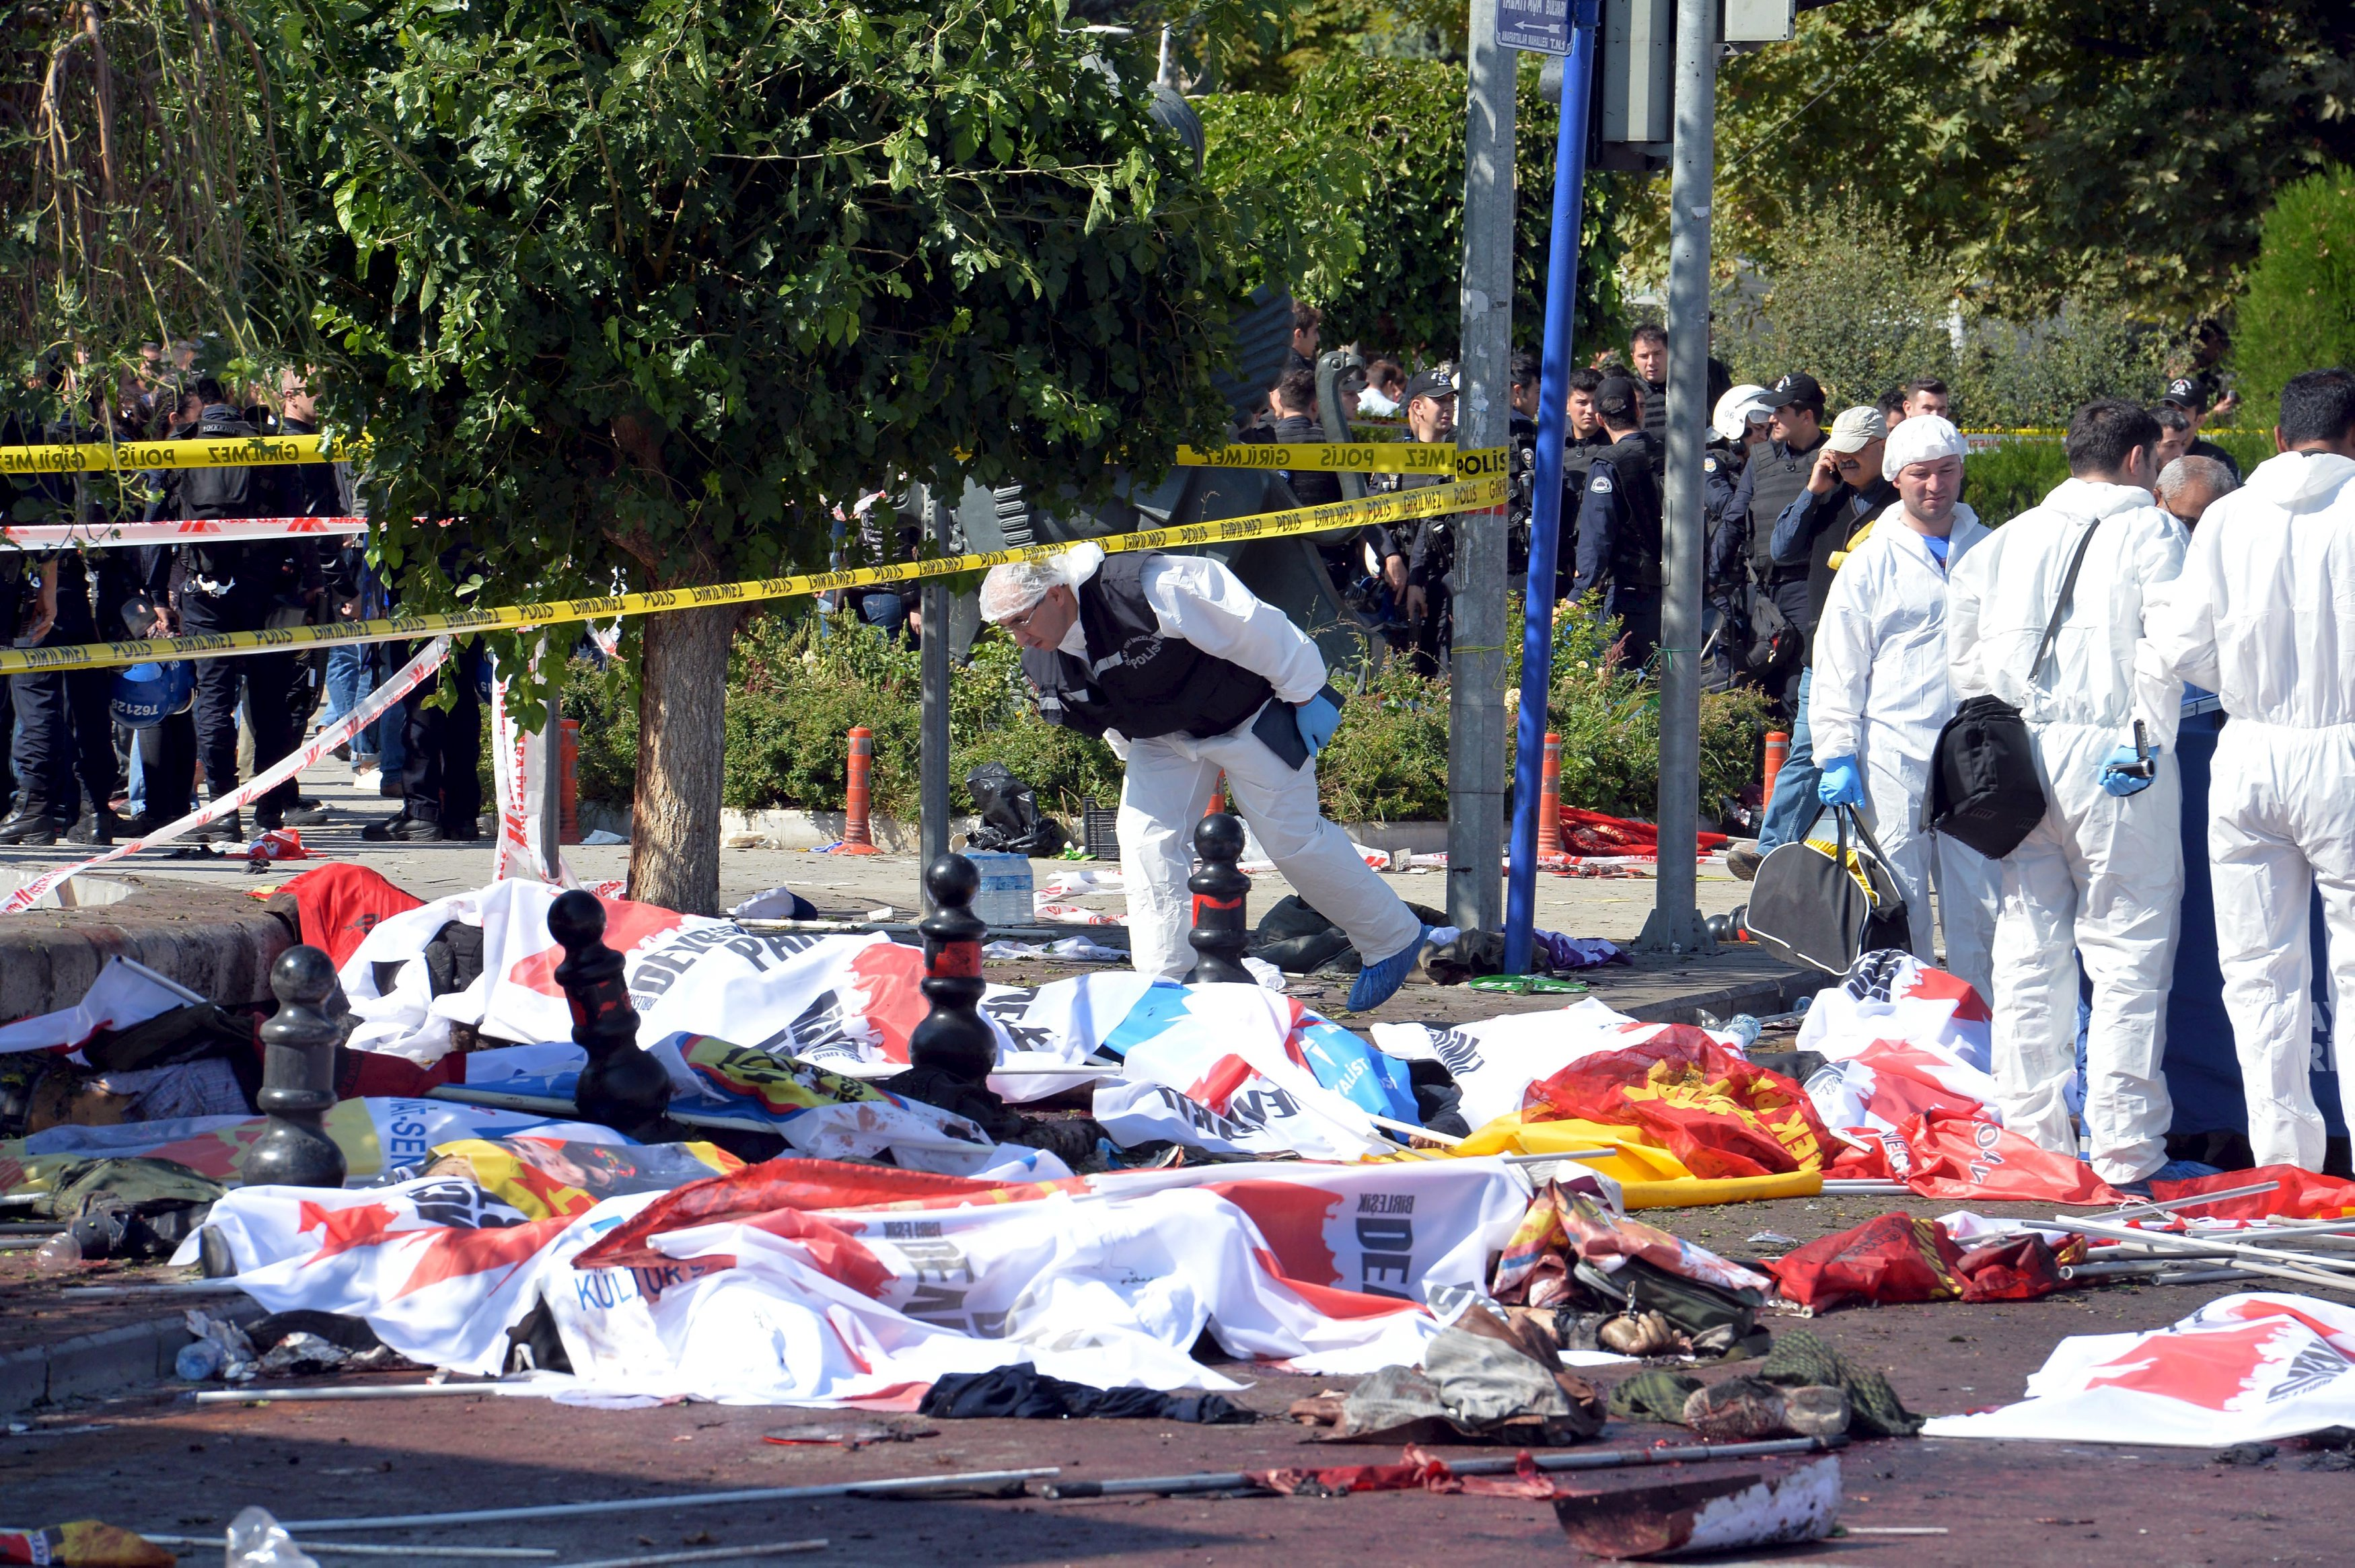 ATTENTION EDITORS - VISUAL COVERAGE OF SCENES OF INJURY OR DEATHPolice forensic experts examine the scene following explosions during a peace march in Ankara, Turkey, October 10, 2015. At least 30 people were killed when twin explosions hit a rally of hundreds of pro-Kurdish and leftist activists outside Ankara's main train station on Saturday in what the government described as a terrorist attack, weeks ahead of an election. REUTERS/Stringer      TPX IMAGES OF THE DAY